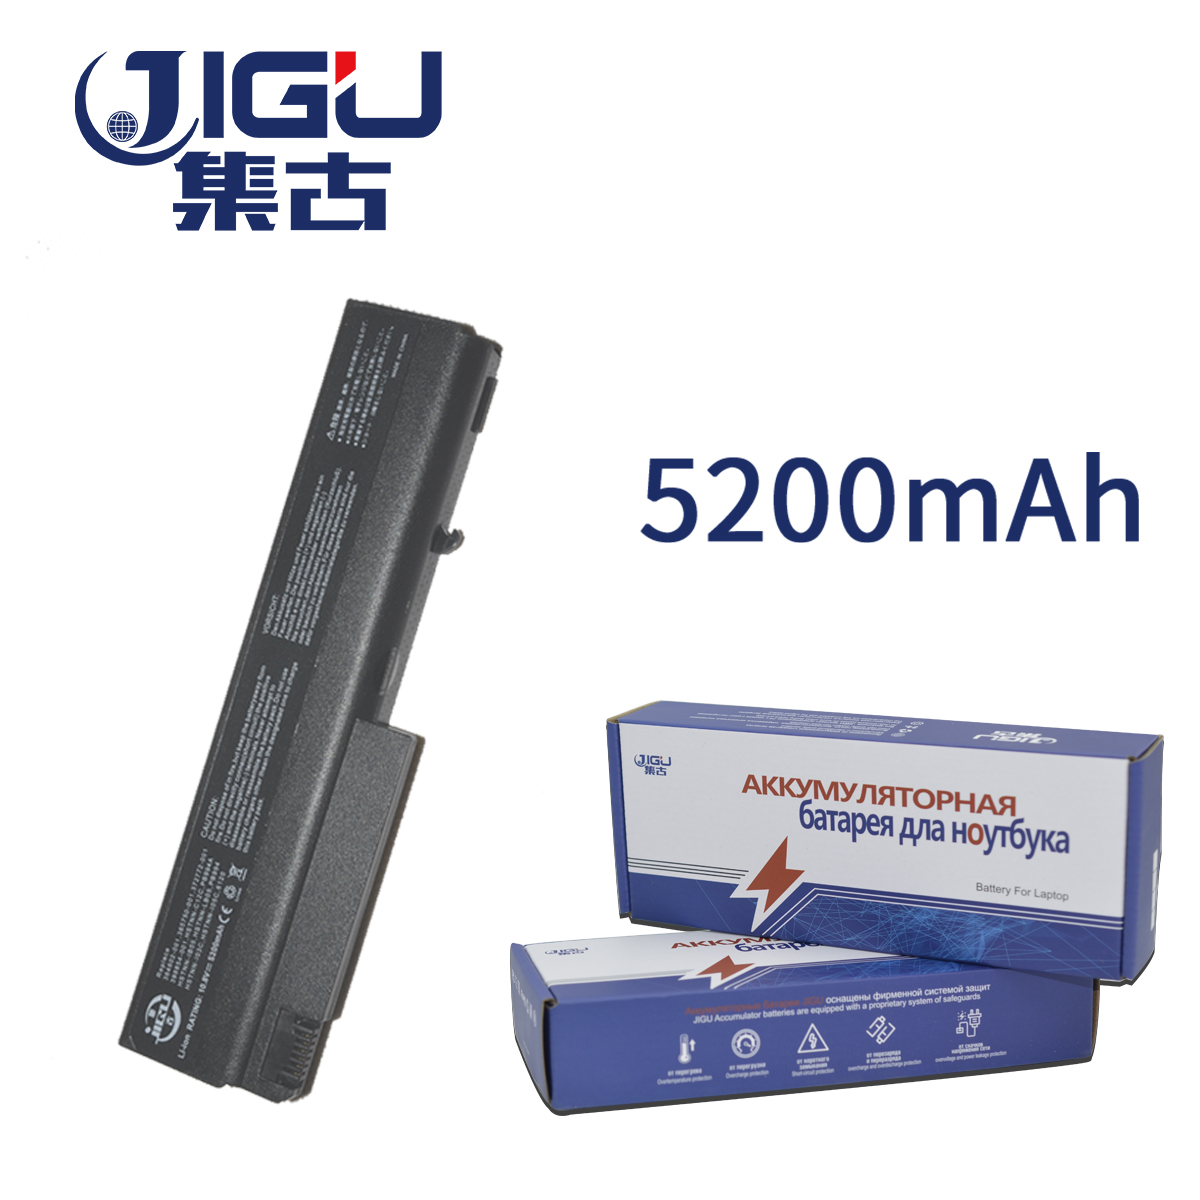 все цены на JIGU Laptop Battery FOR Hp Compaq Business Notebook Nc6320 NX5100 NX6100 Nx6300 NX6310 NX6315 NX6325 Nx6330 NX6320/CT